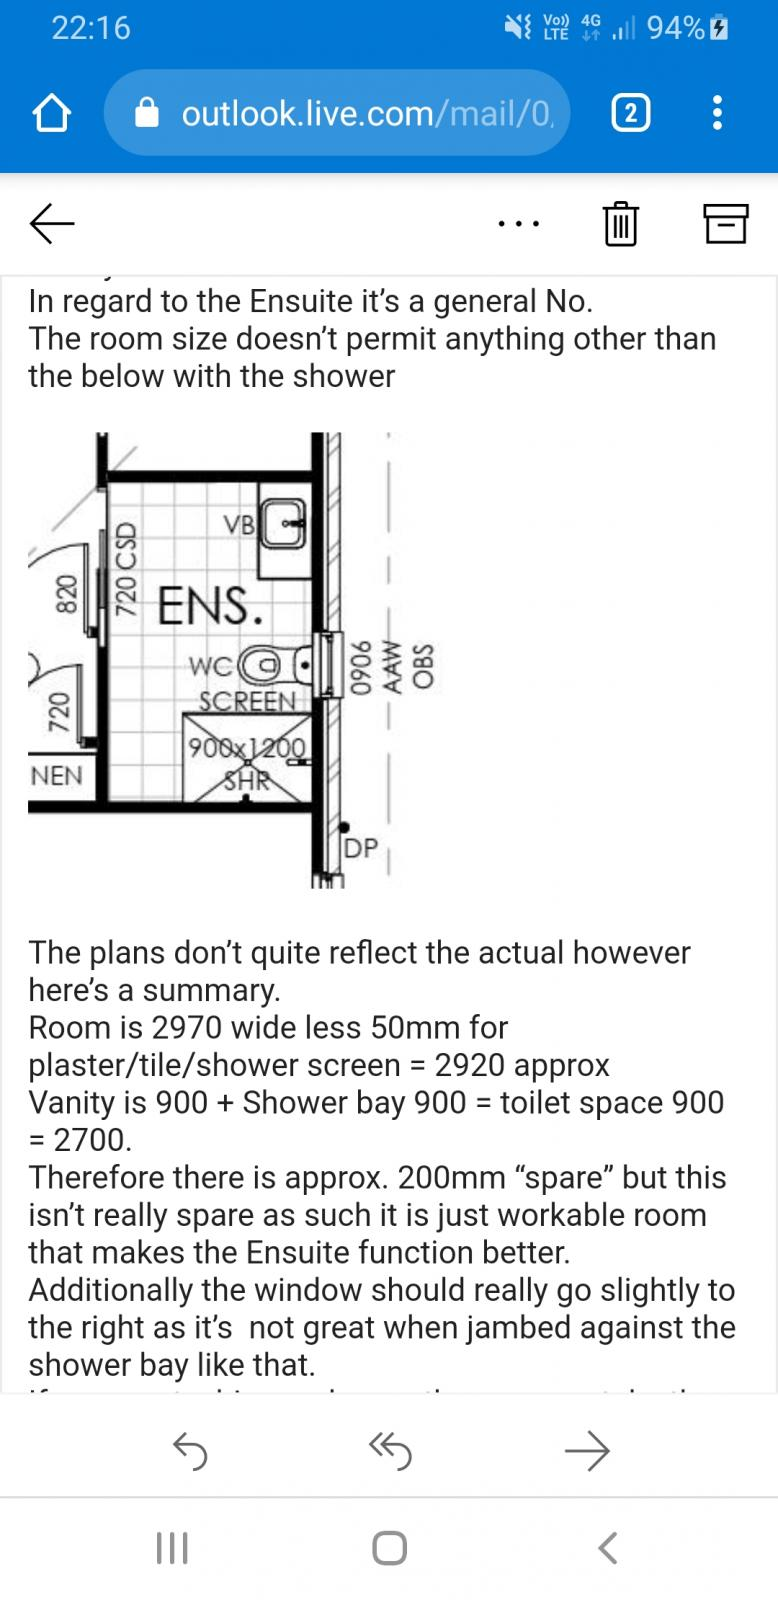 820mm toilet space, is this big enough?